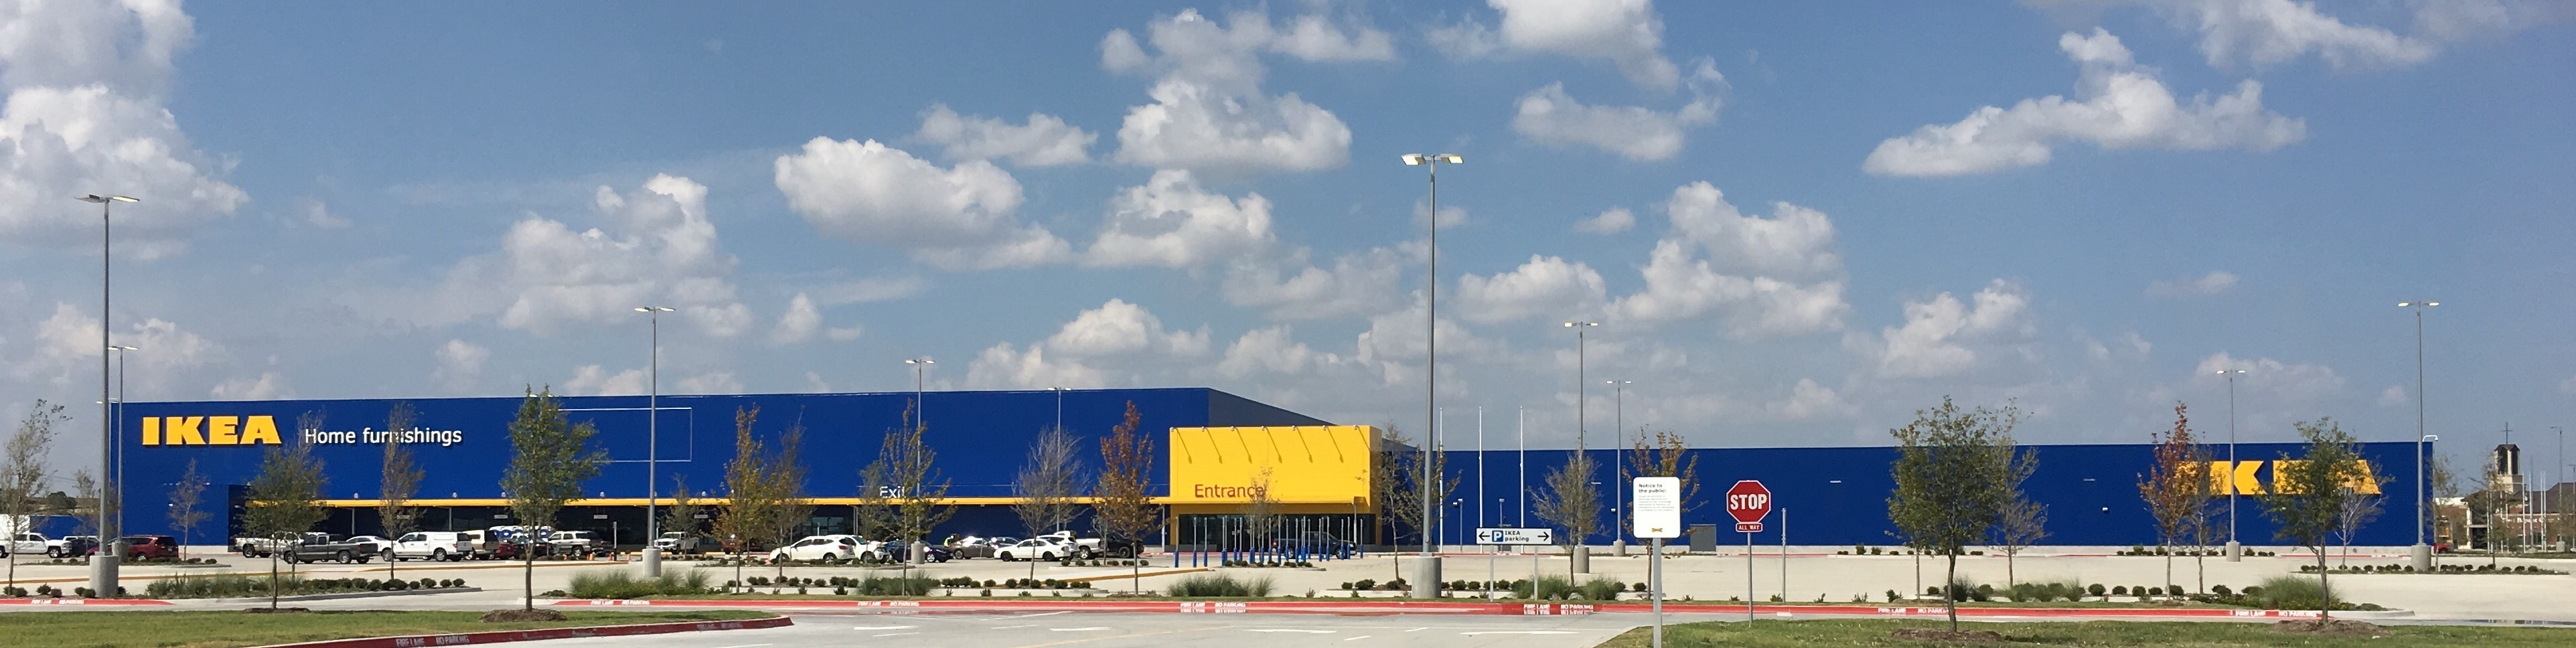 Ikea Frisco Ikea Grand Prairie To Open On December 13 2017 Business Wire